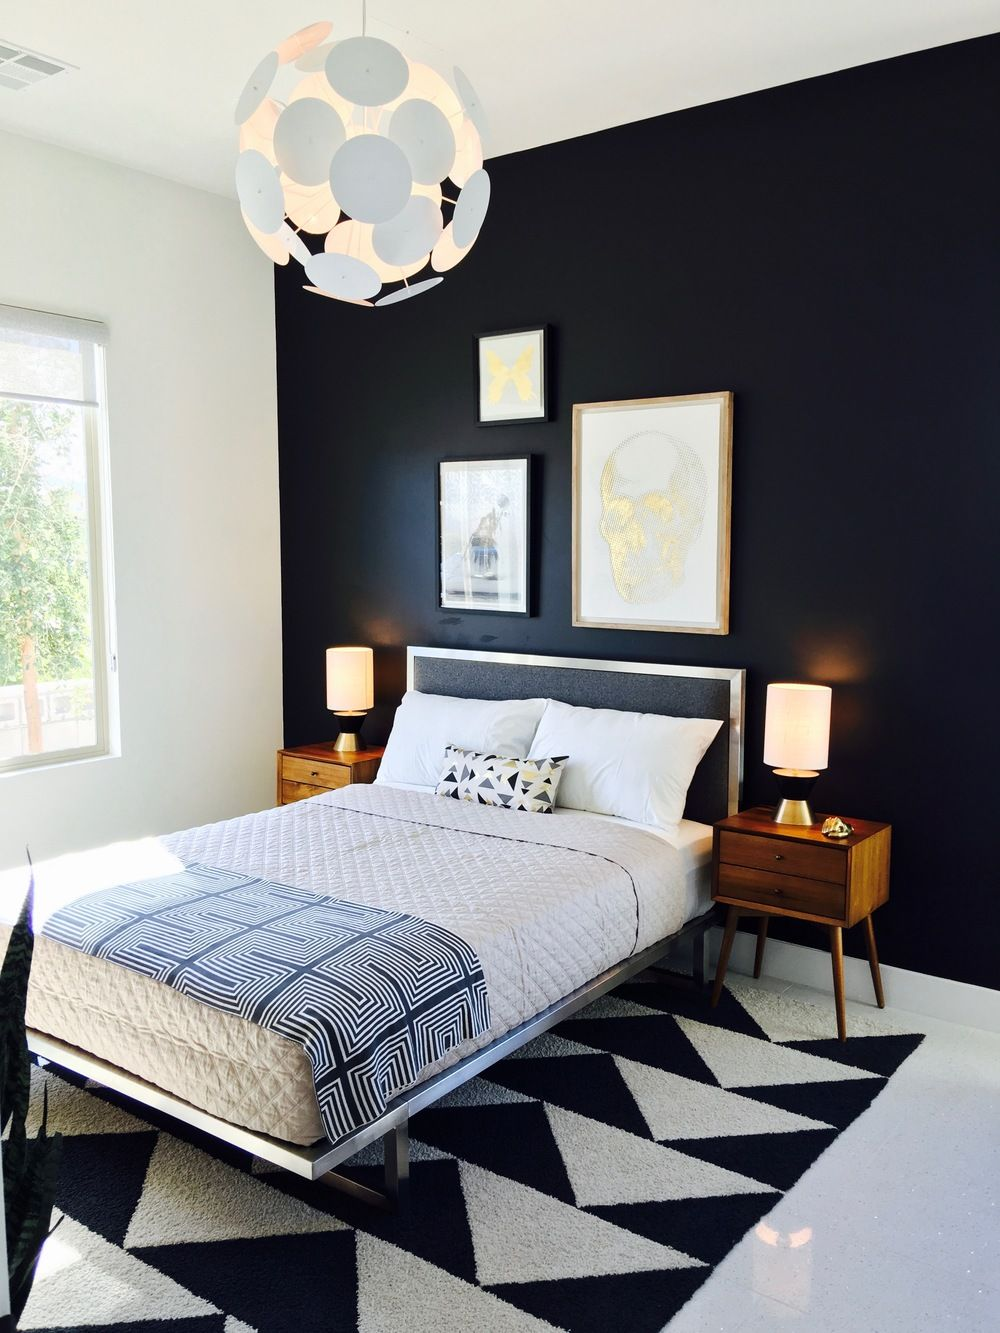 pinterest designs modern interior century dreamlike bedroom mid